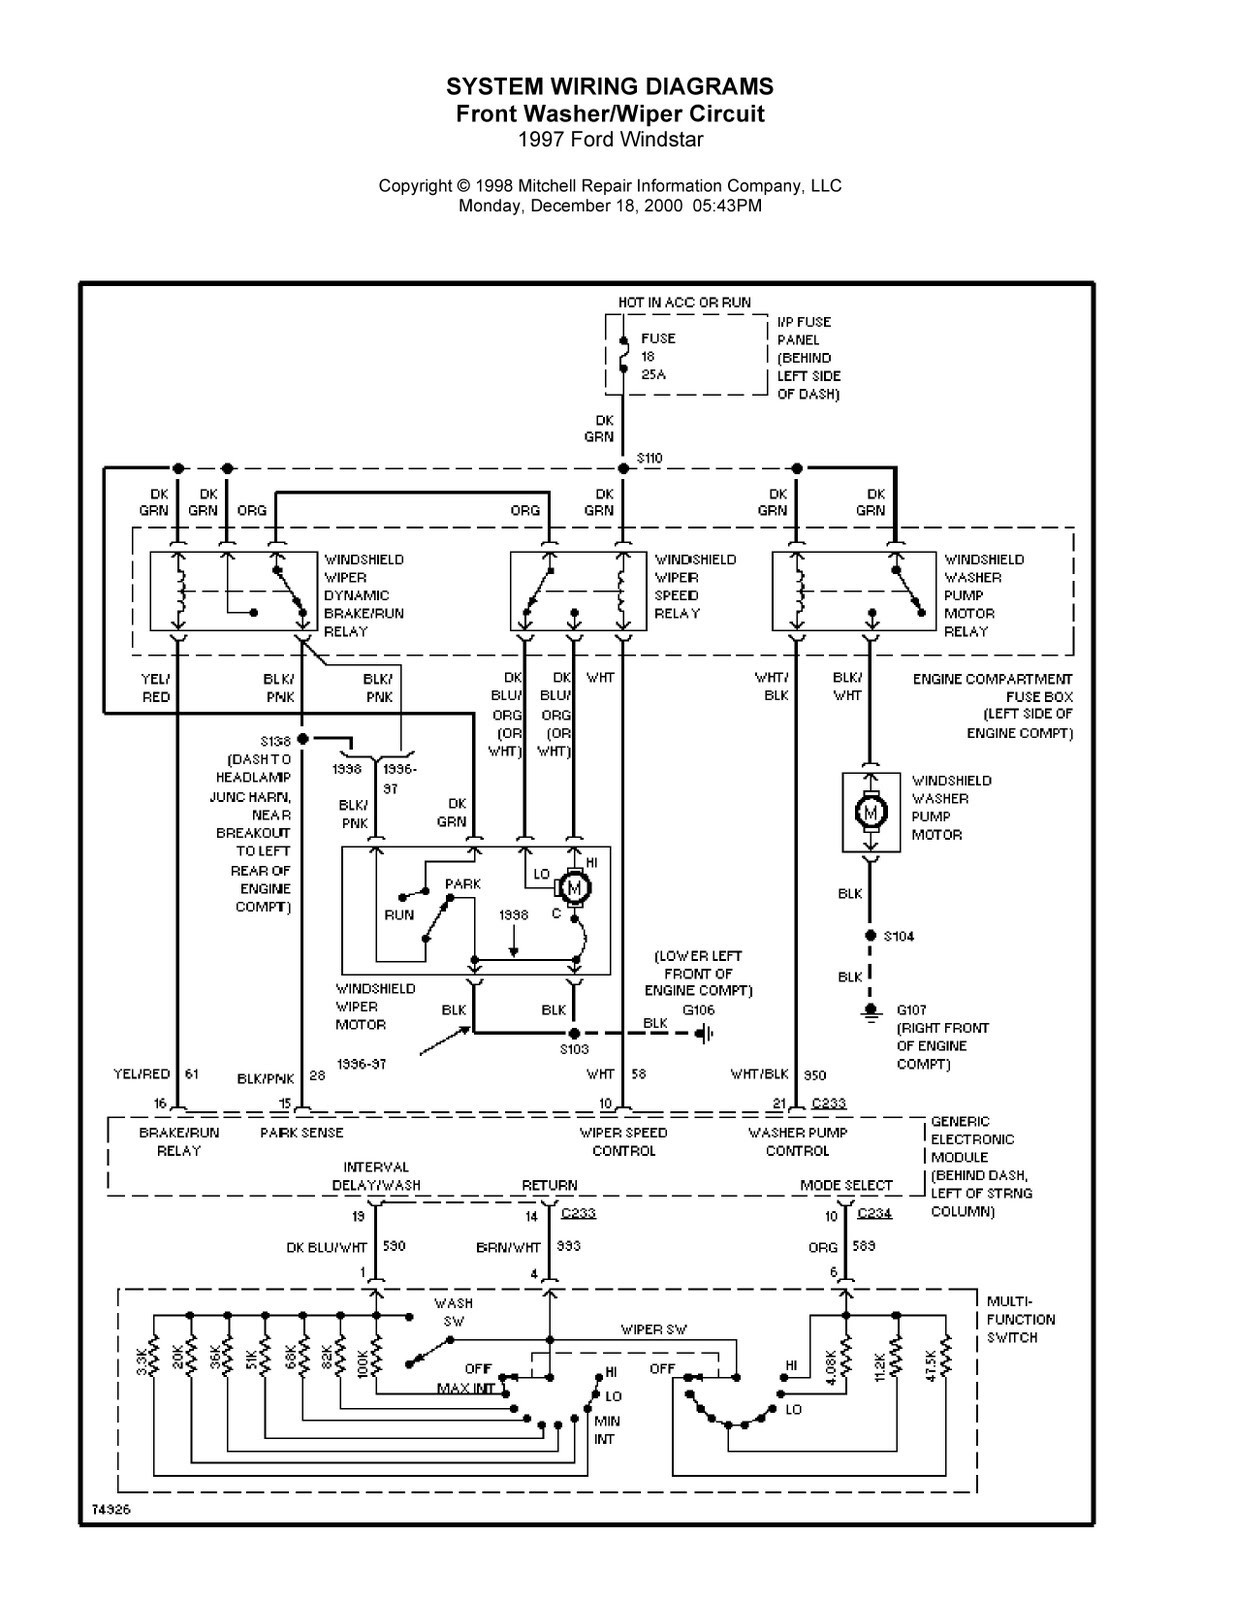 2003 ford windstar wiring diagram headlamp wiring diagram 1999 ford 2000 ford windstar wiring-diagram 2003 ford windstar wiring diagram 1997 ford windstar plete system wiring diagrams beauteous 2000 of 2003